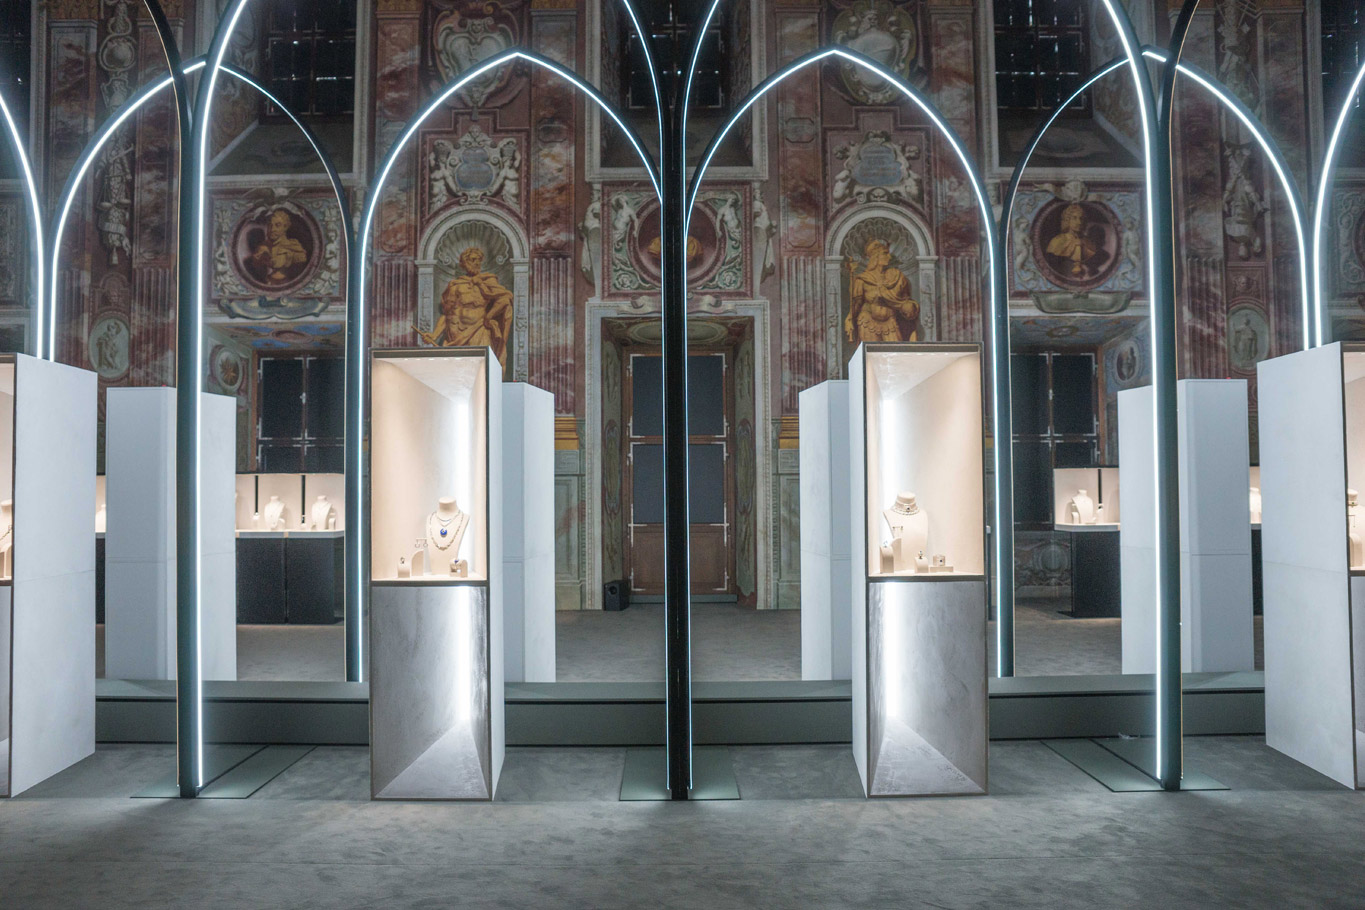 Photograph of the alcoves at the Louis Vuitton Haute Joaillerie exhibition with silver rectangle display